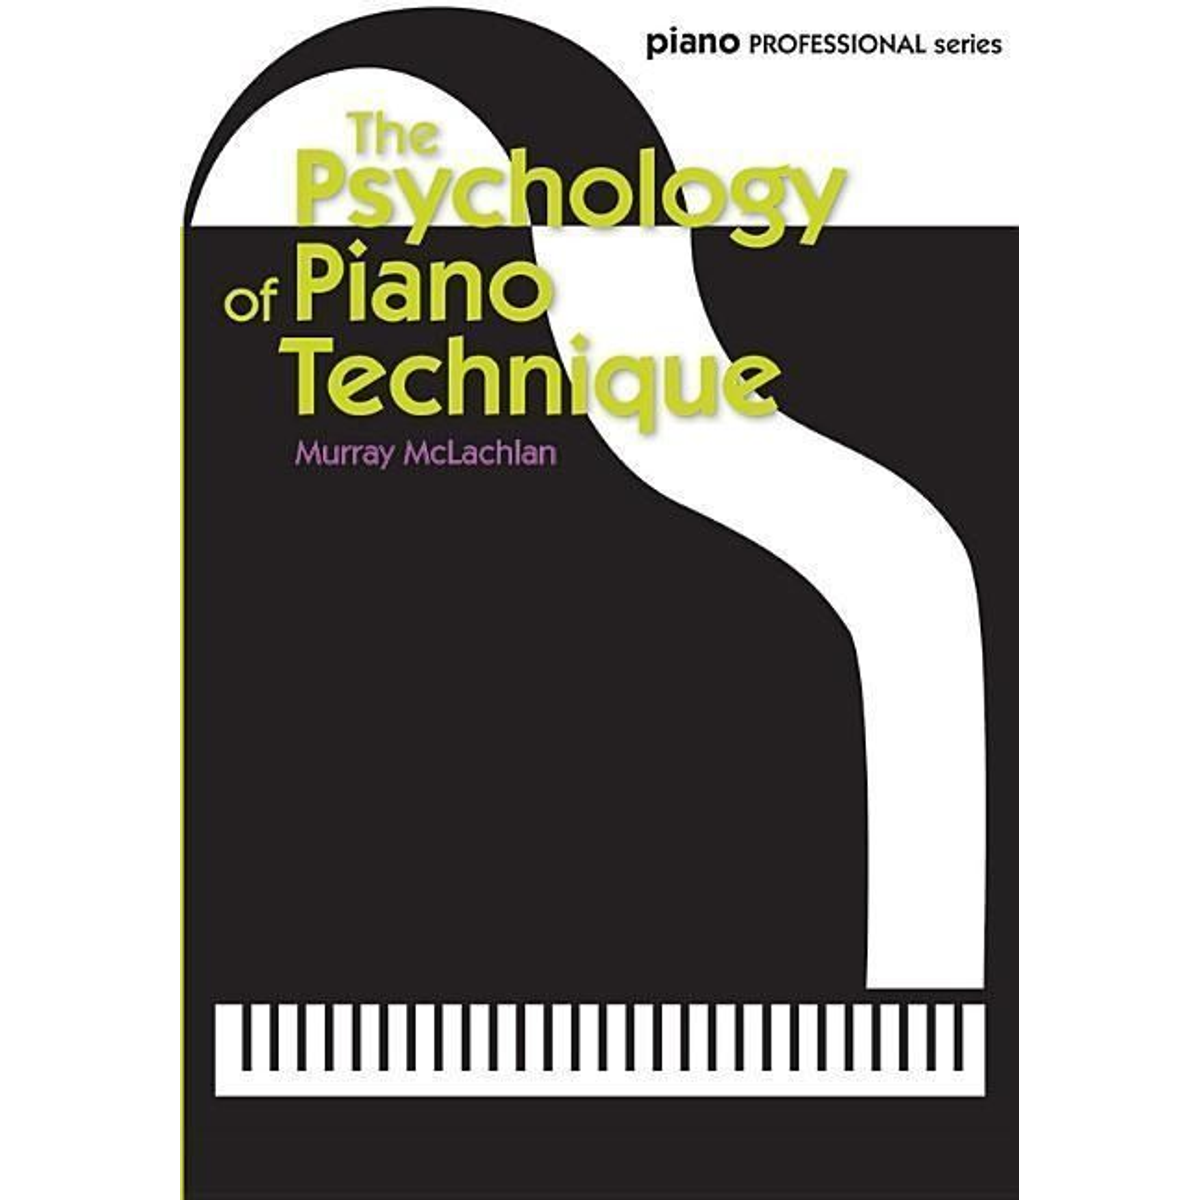 The Psychology of Piano Technique